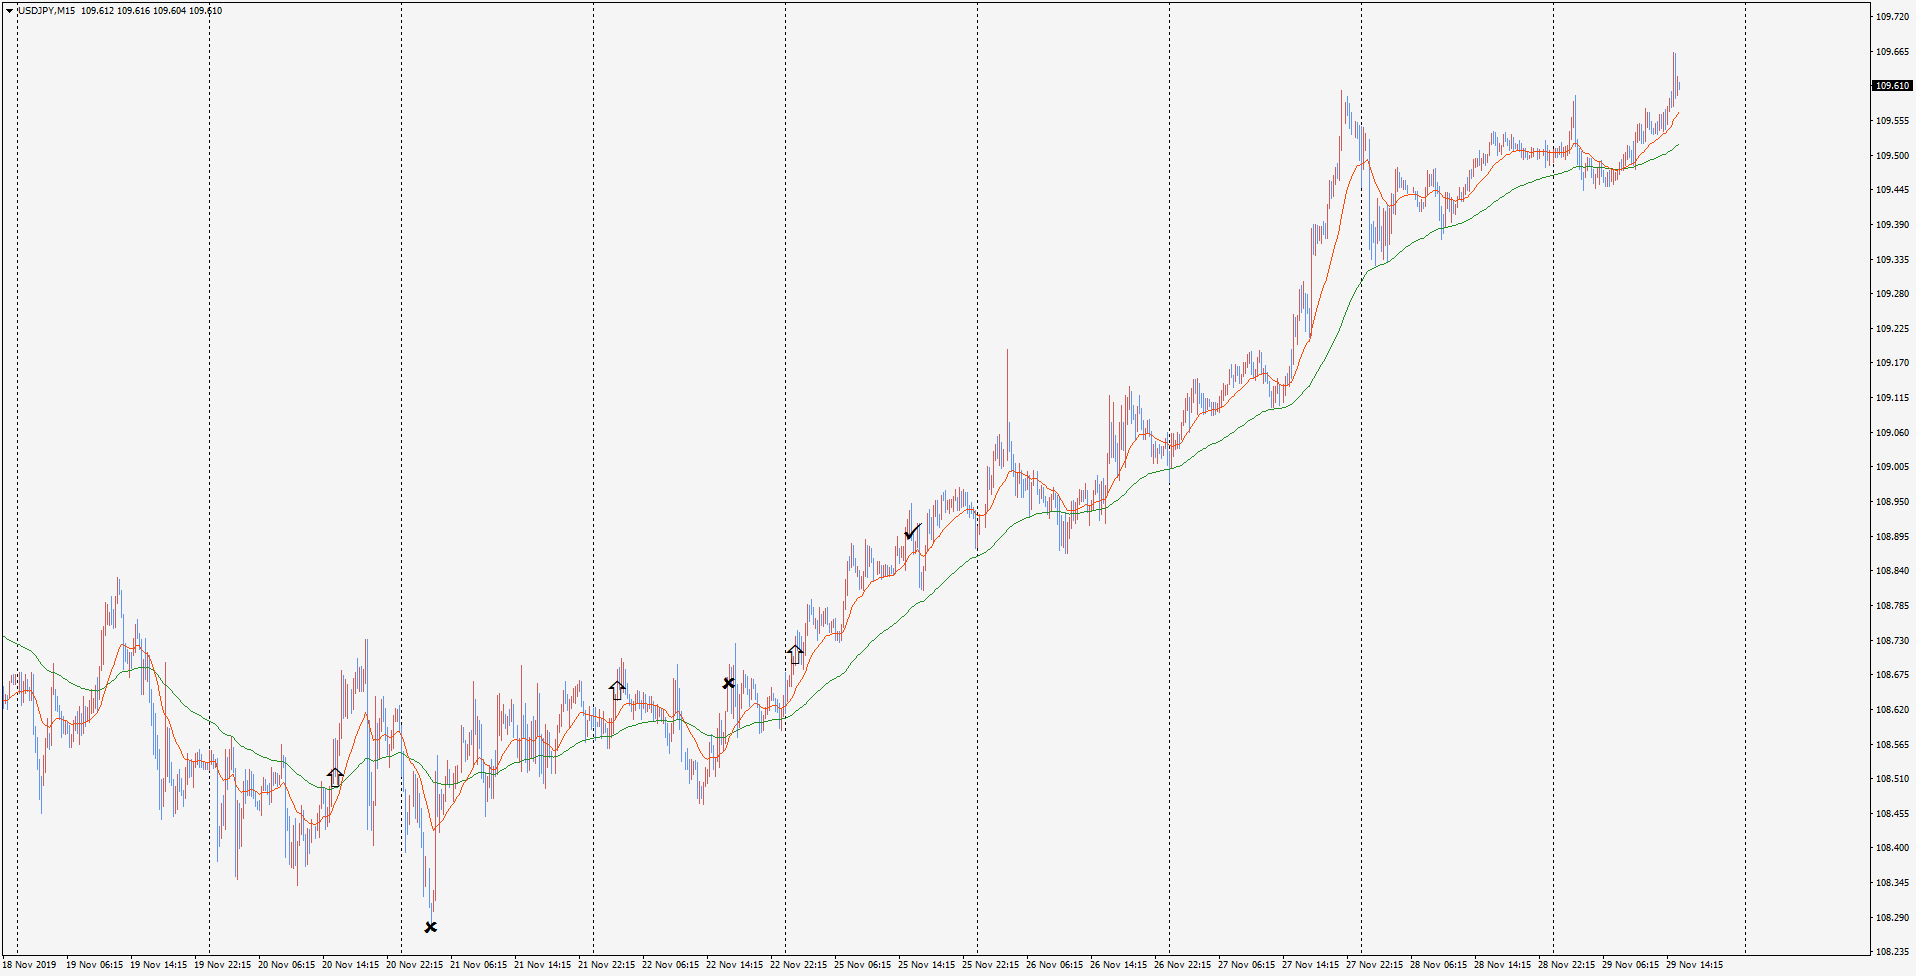 19-11-29-usdjpy-m15-tradexfin-limited.png